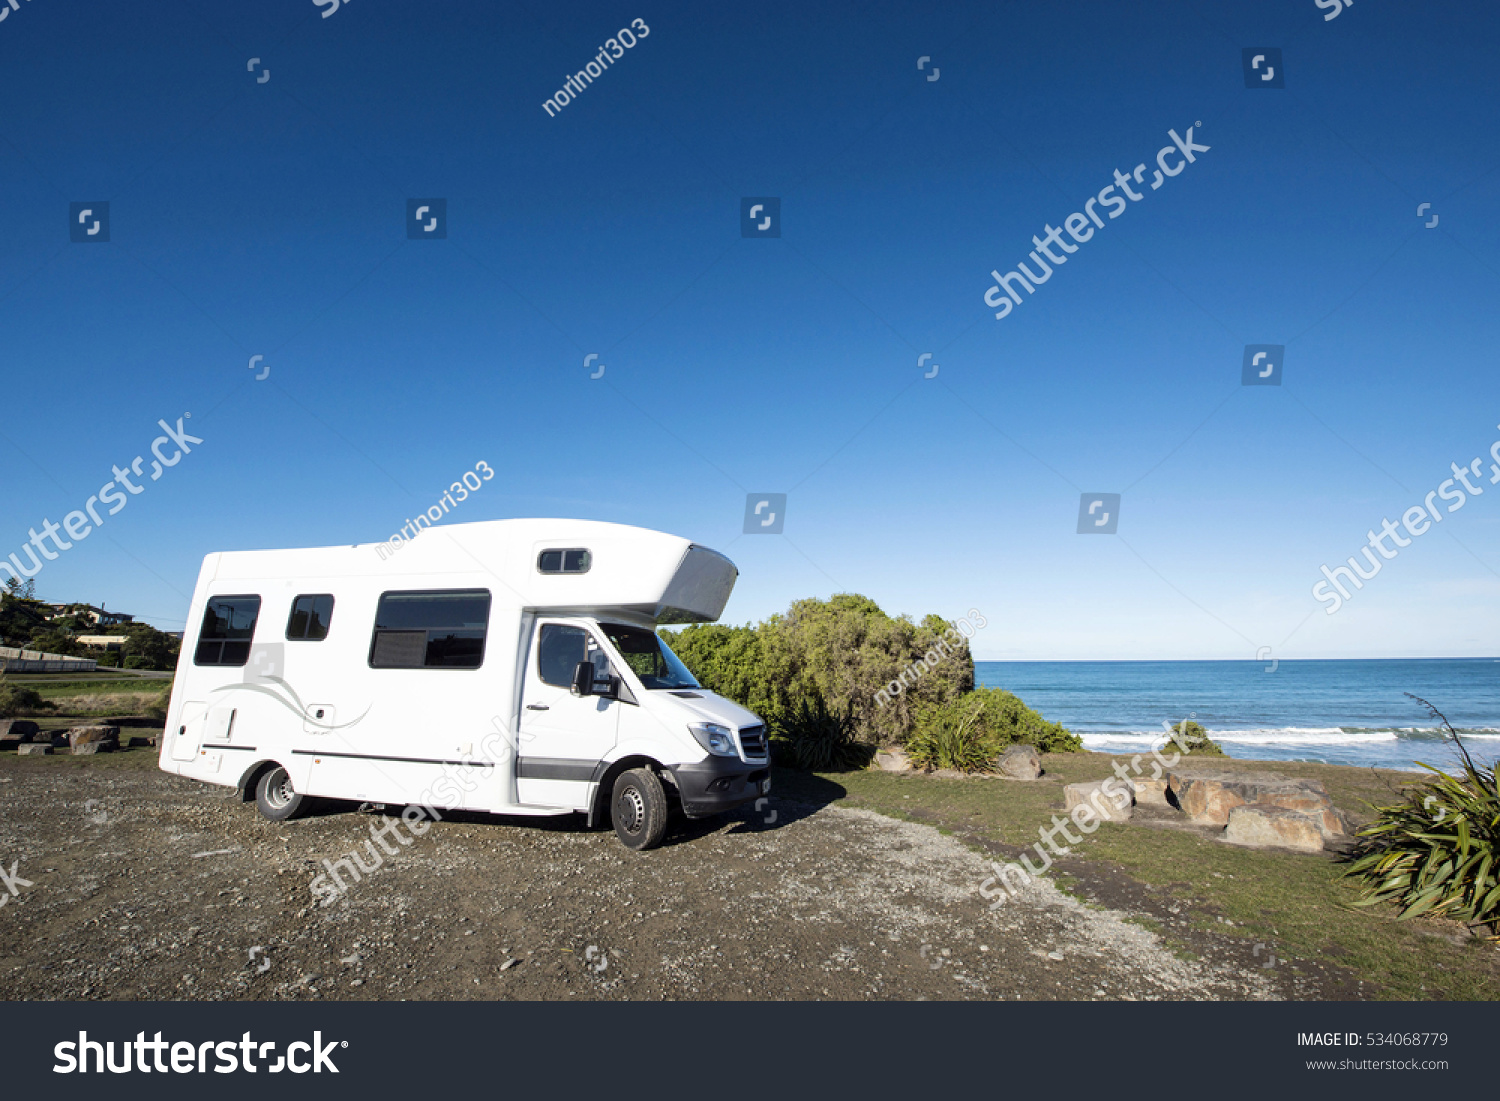 camping car and kakanui south island new zealand stock photo 534068779 shutterstock. Black Bedroom Furniture Sets. Home Design Ideas